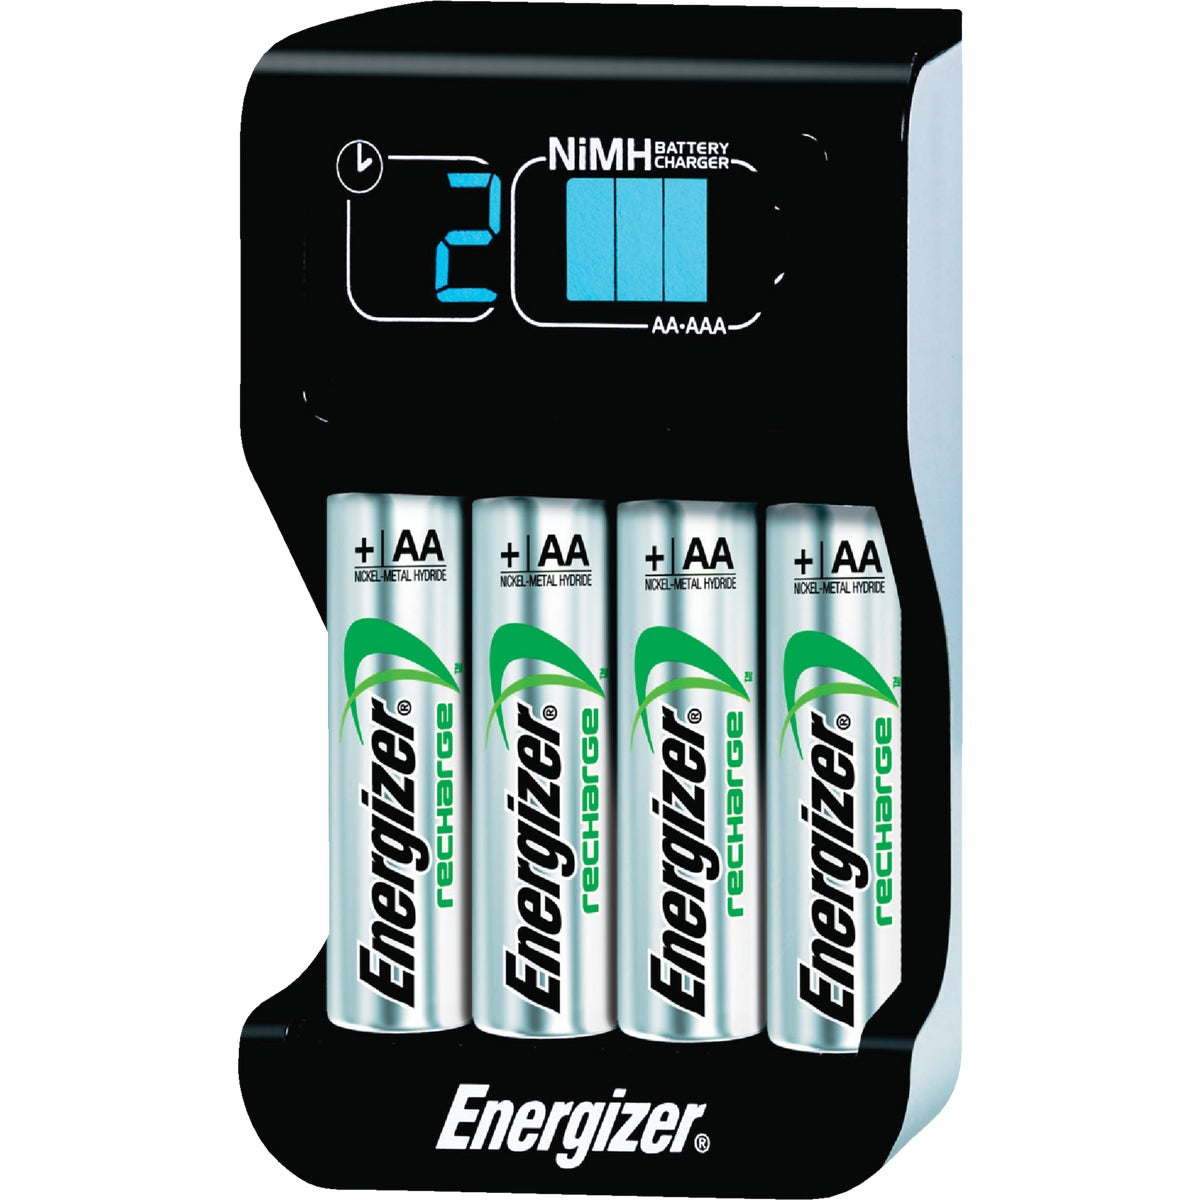 SMART BATTERY CHARGER